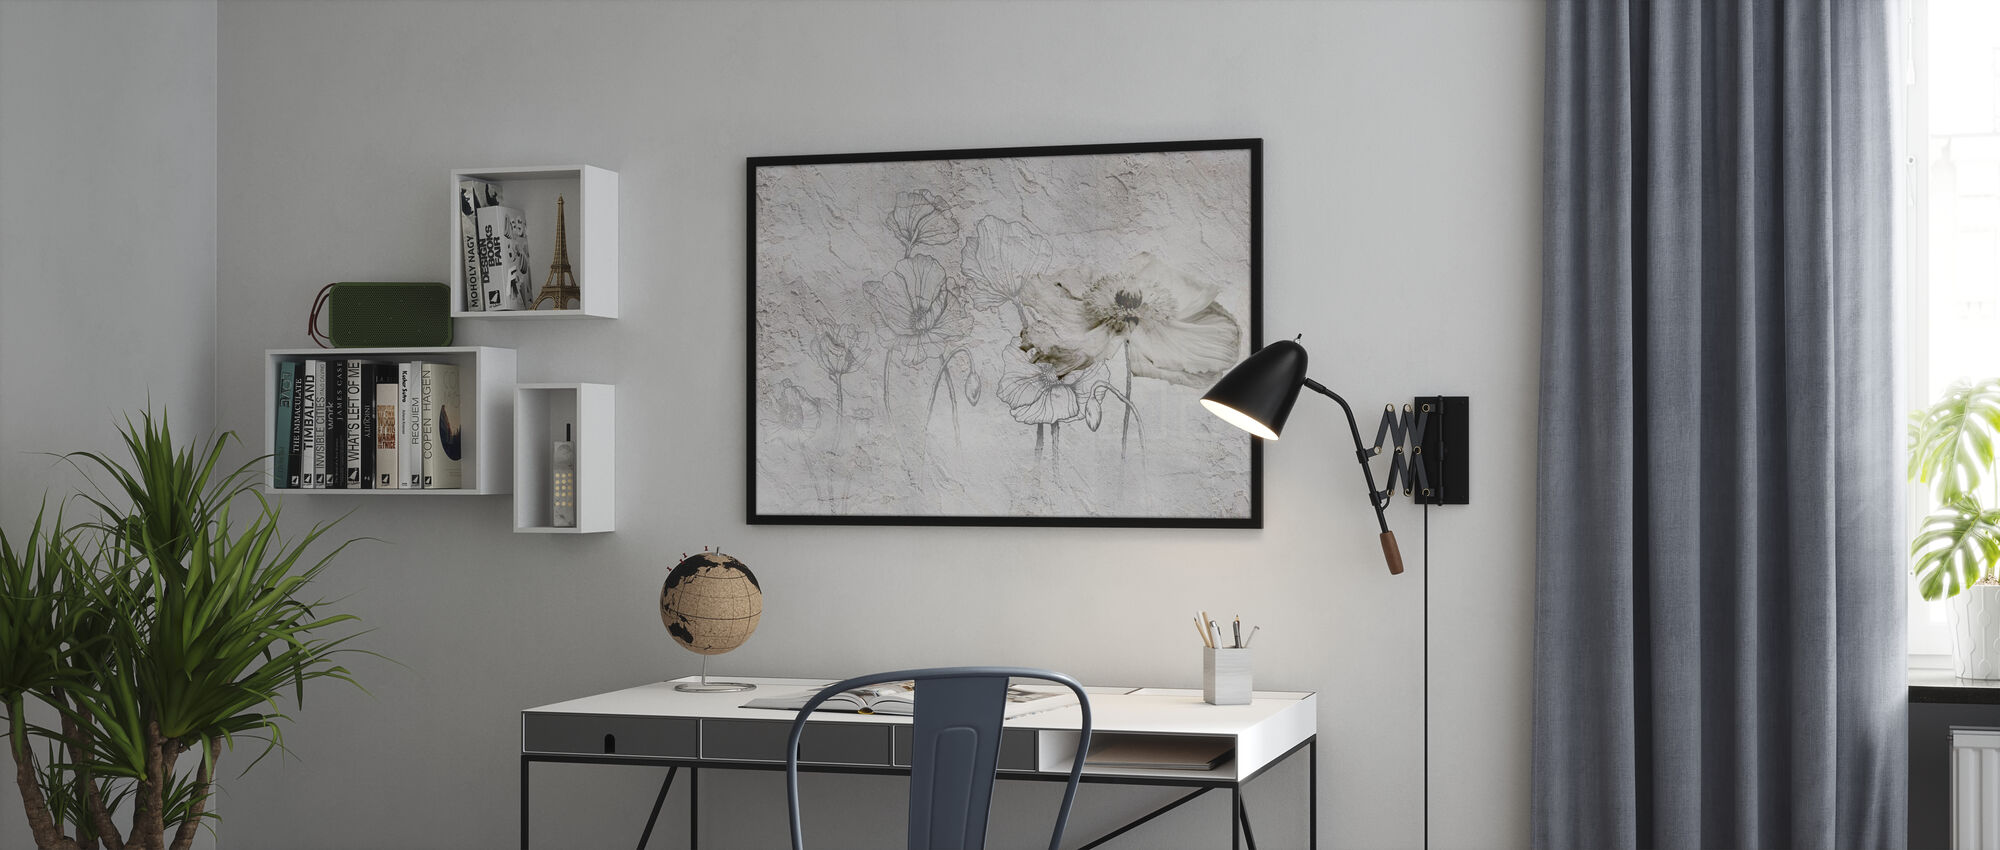 Flowers on Craking Wall - Poster - Office